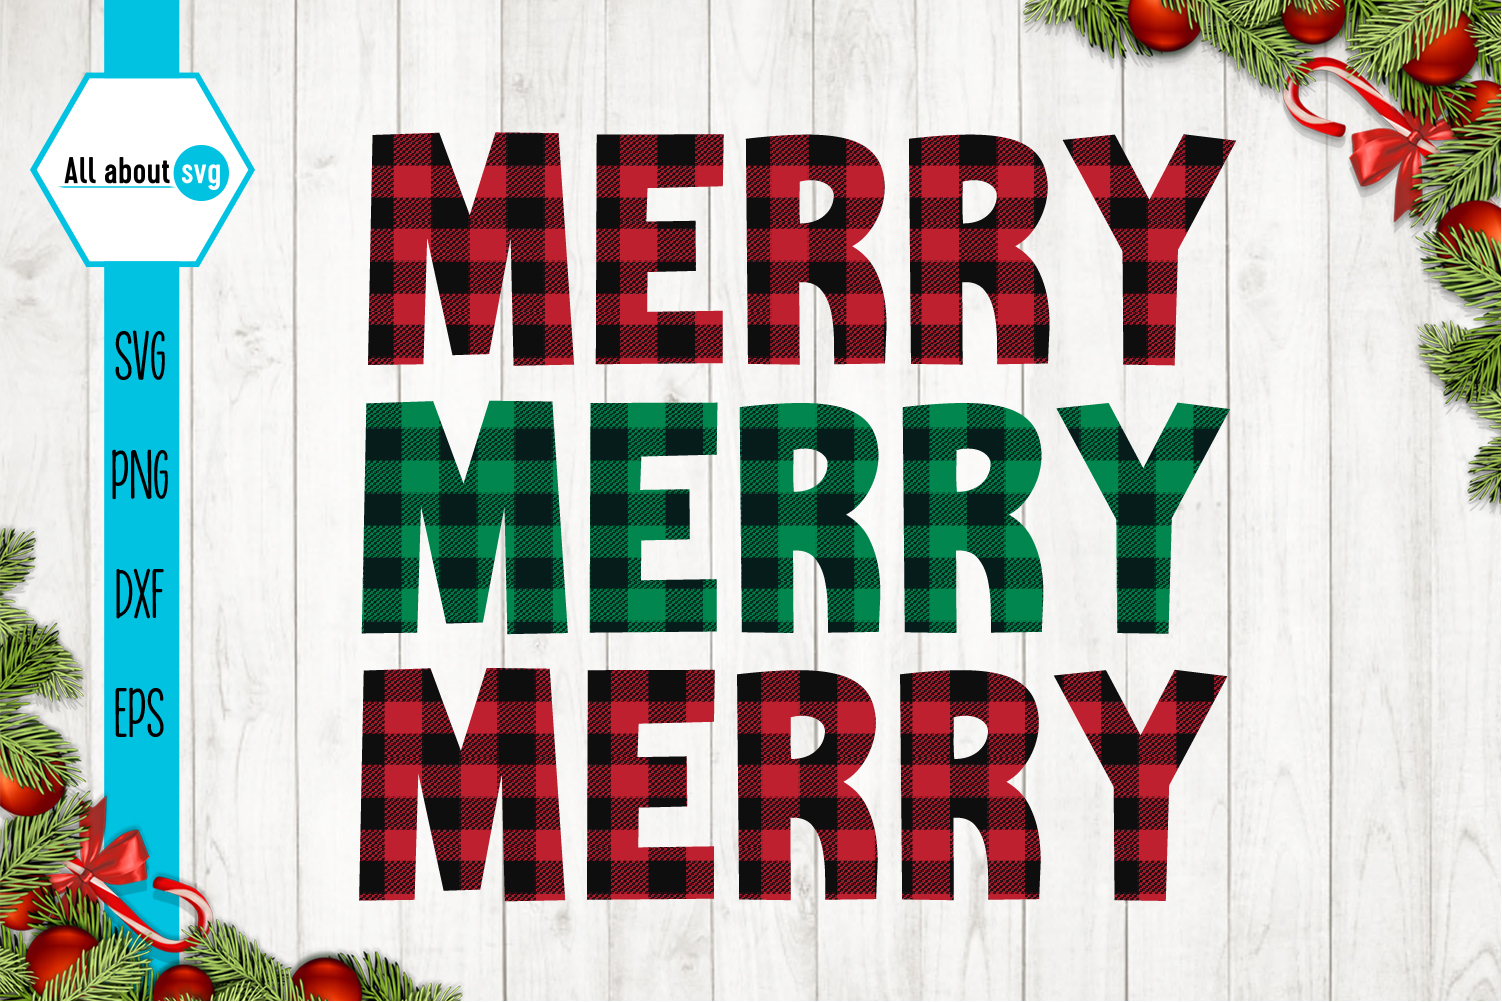 Merry Merry Merry Christmas Plaid Svg example image 2